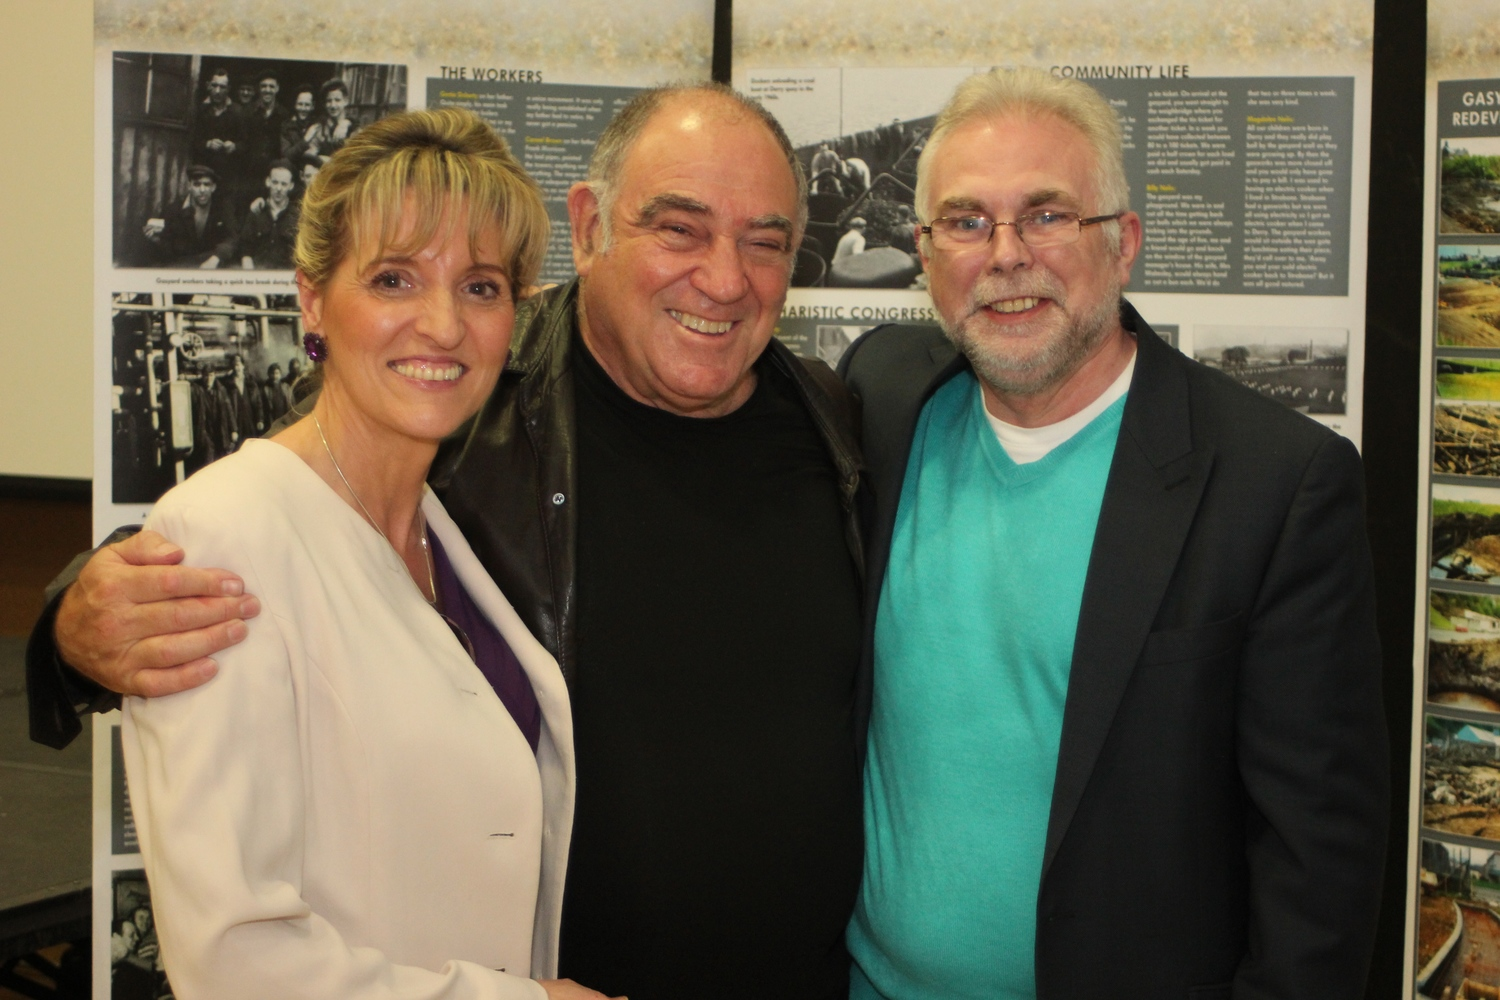 Sinn Féin adviser Paul Kavanagh, right, with the ANC's Ronnie Kasrils, & Martina Anderson MEP.